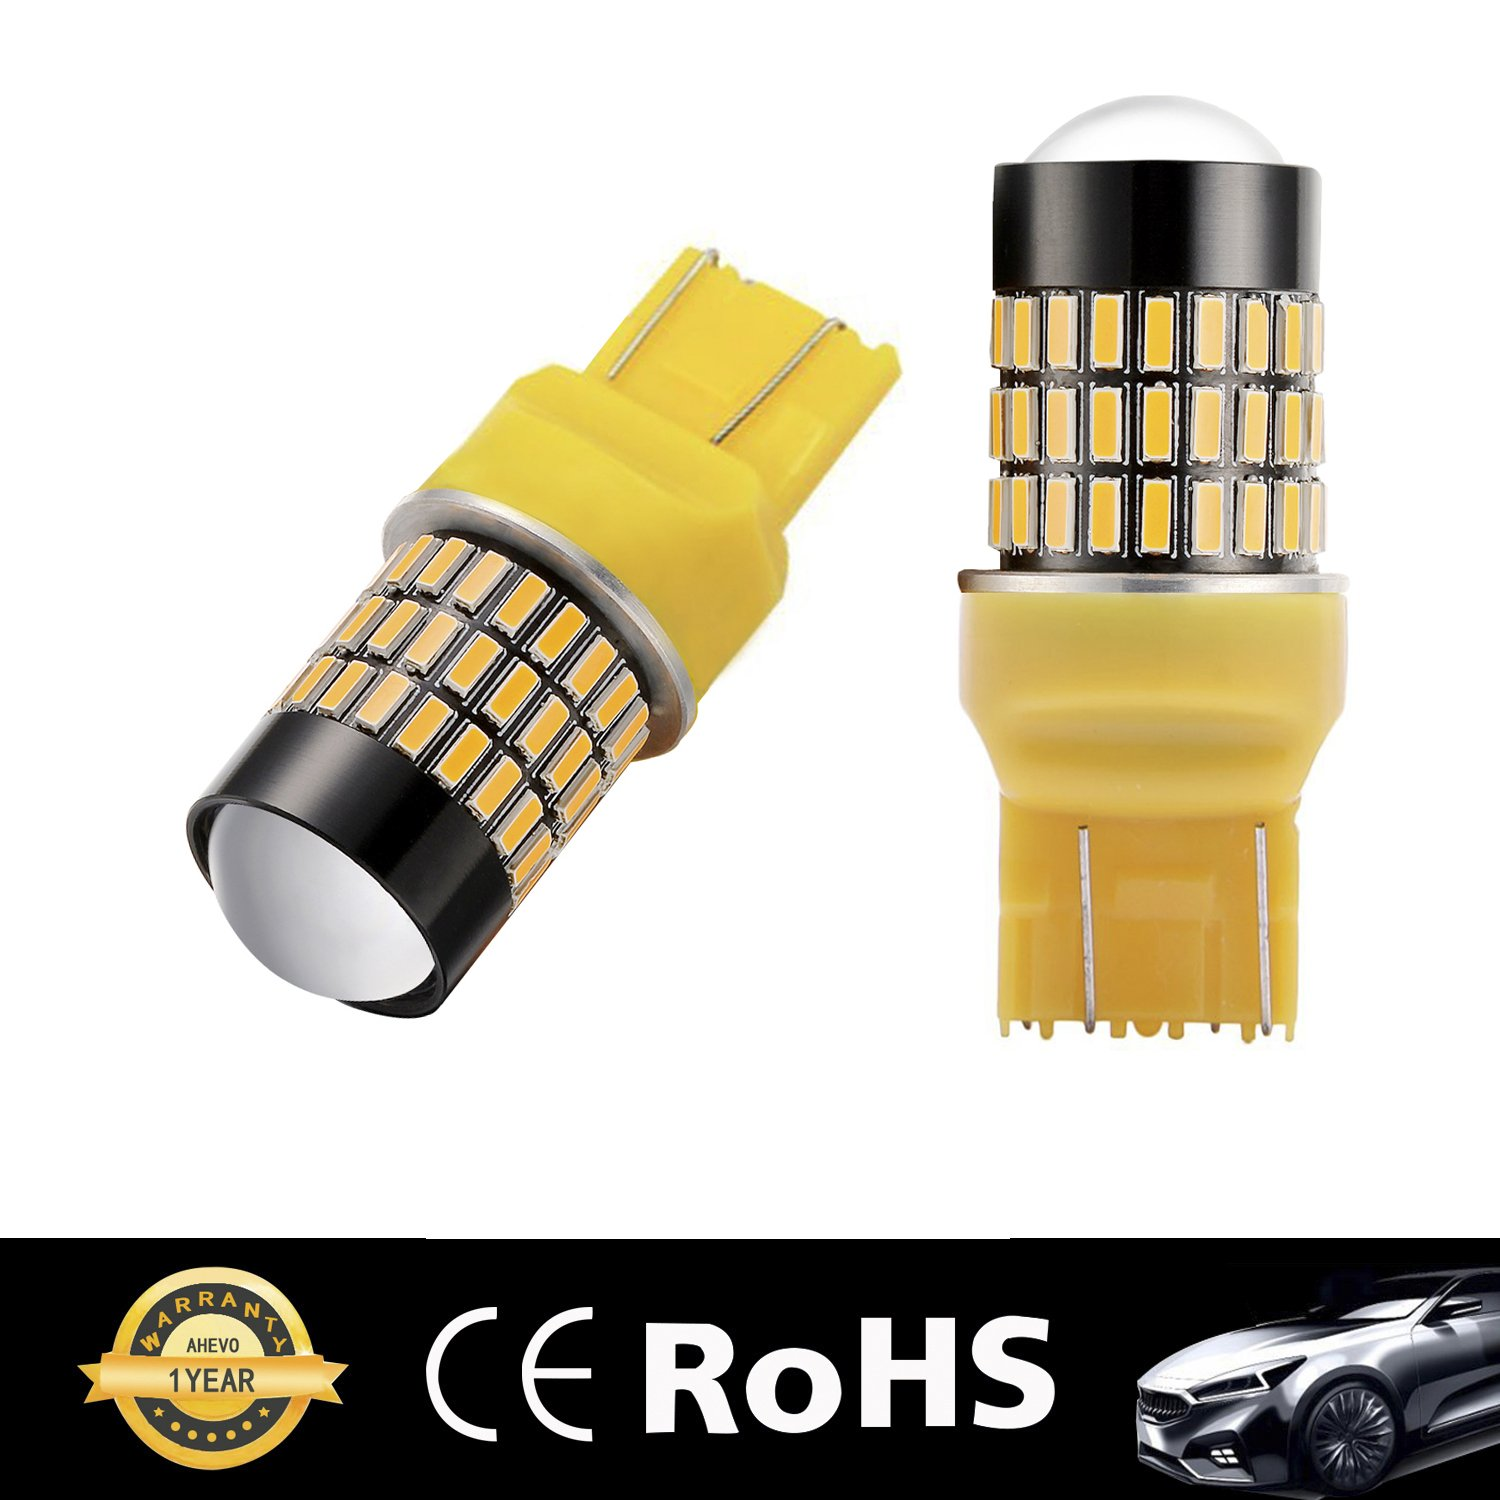 AHEVO 2 x Super Bright Low Power 9-30V 3156 3157 3057 4157 LED Bulbs with Projector Replacement for Turn Signal Lights,3157 Amber Yellow